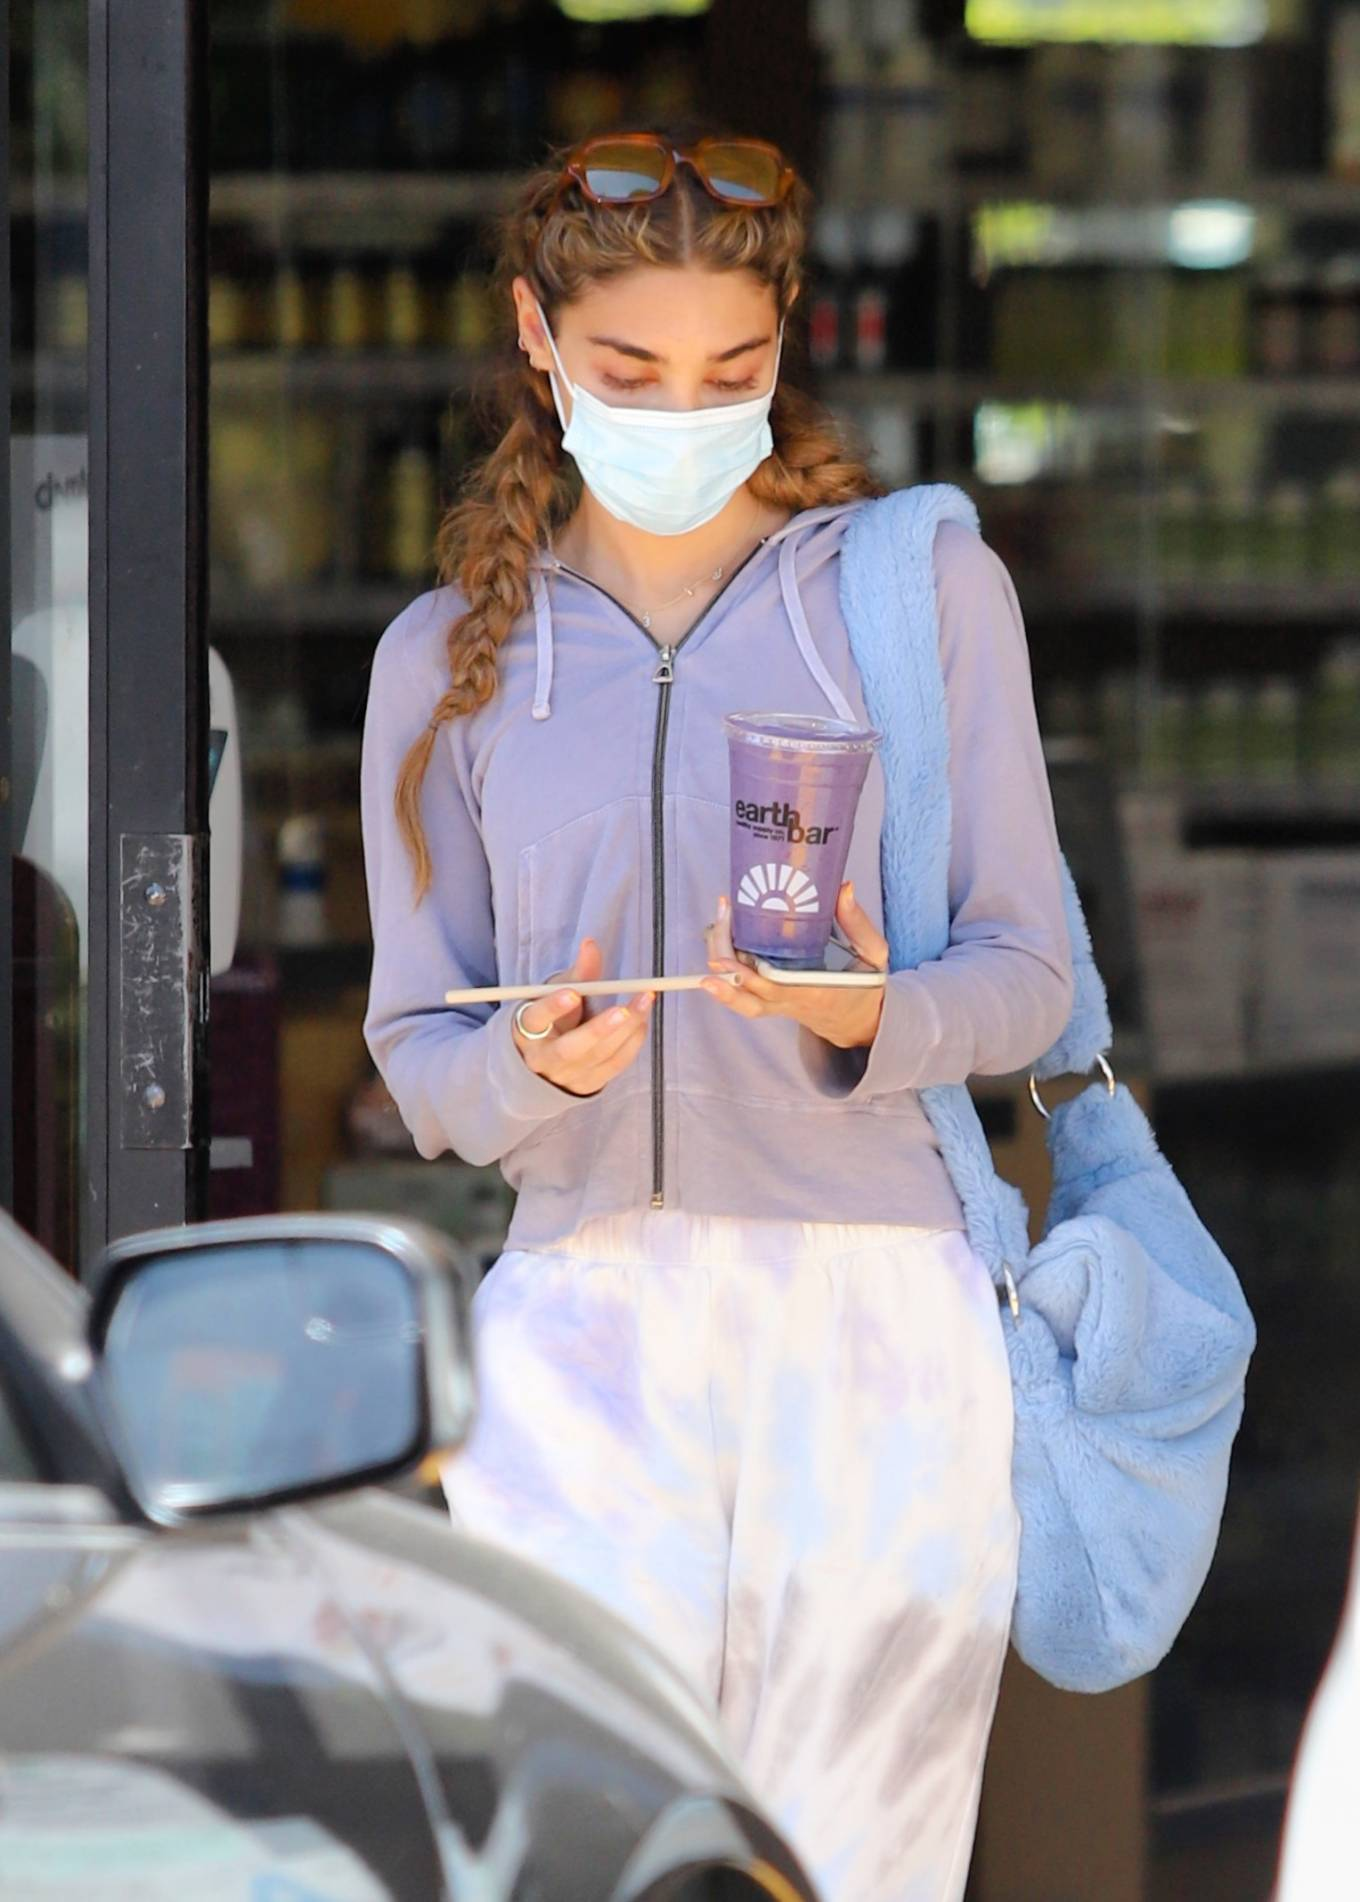 Chantel Jeffries - Getting a smoothie at Earthbar in West Hollywood